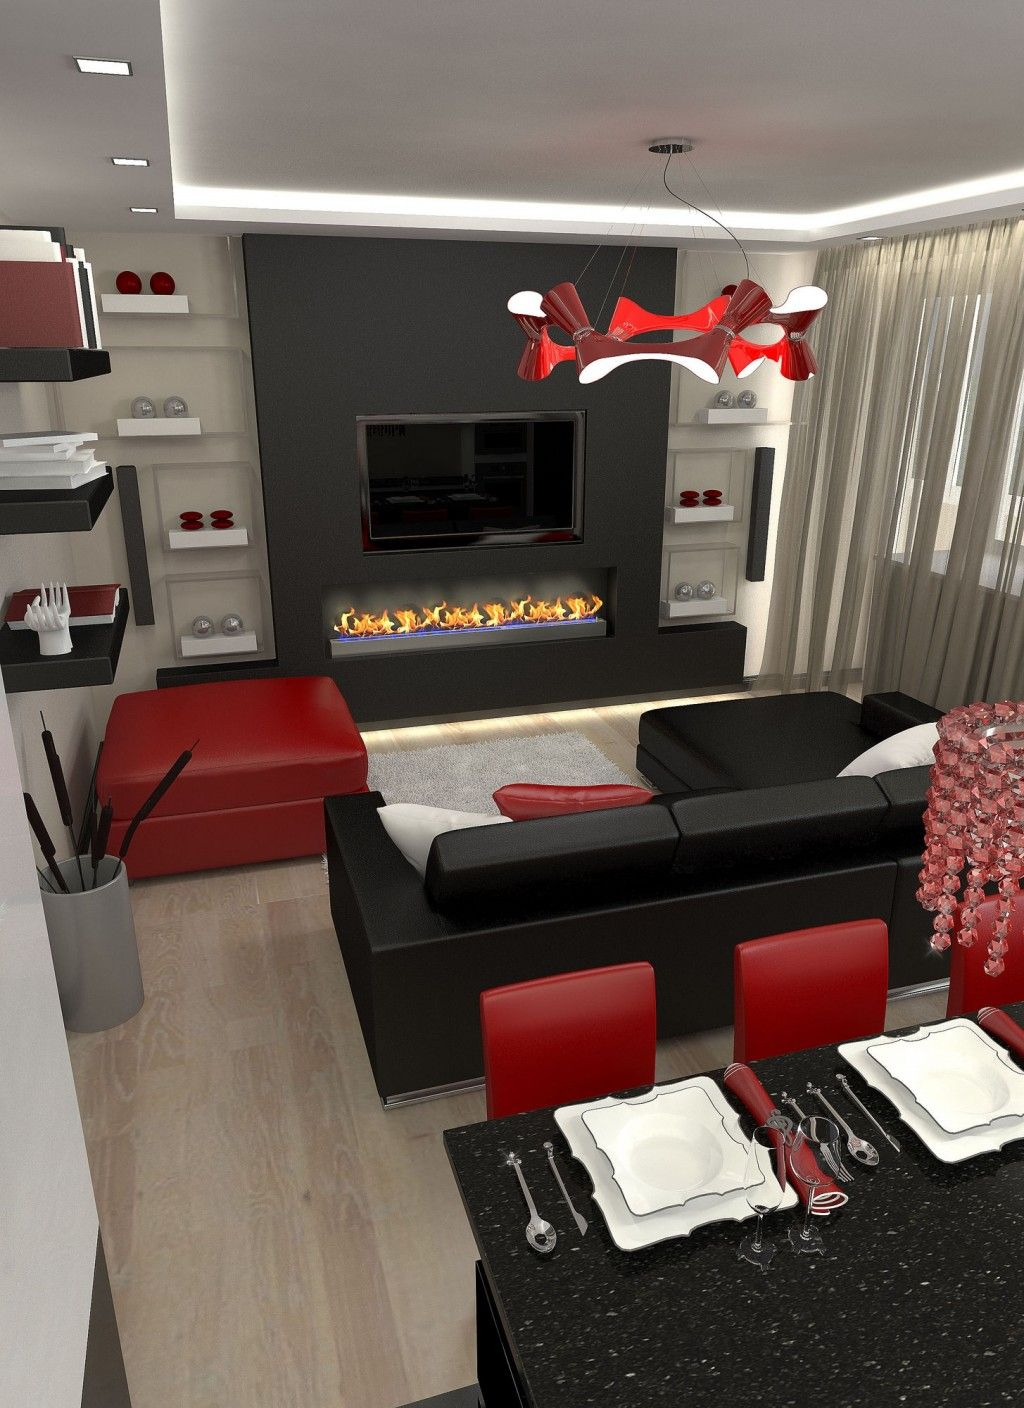 Black and red bedroom furniture - Red Black And White Living Room Decor And Furniture Large Size